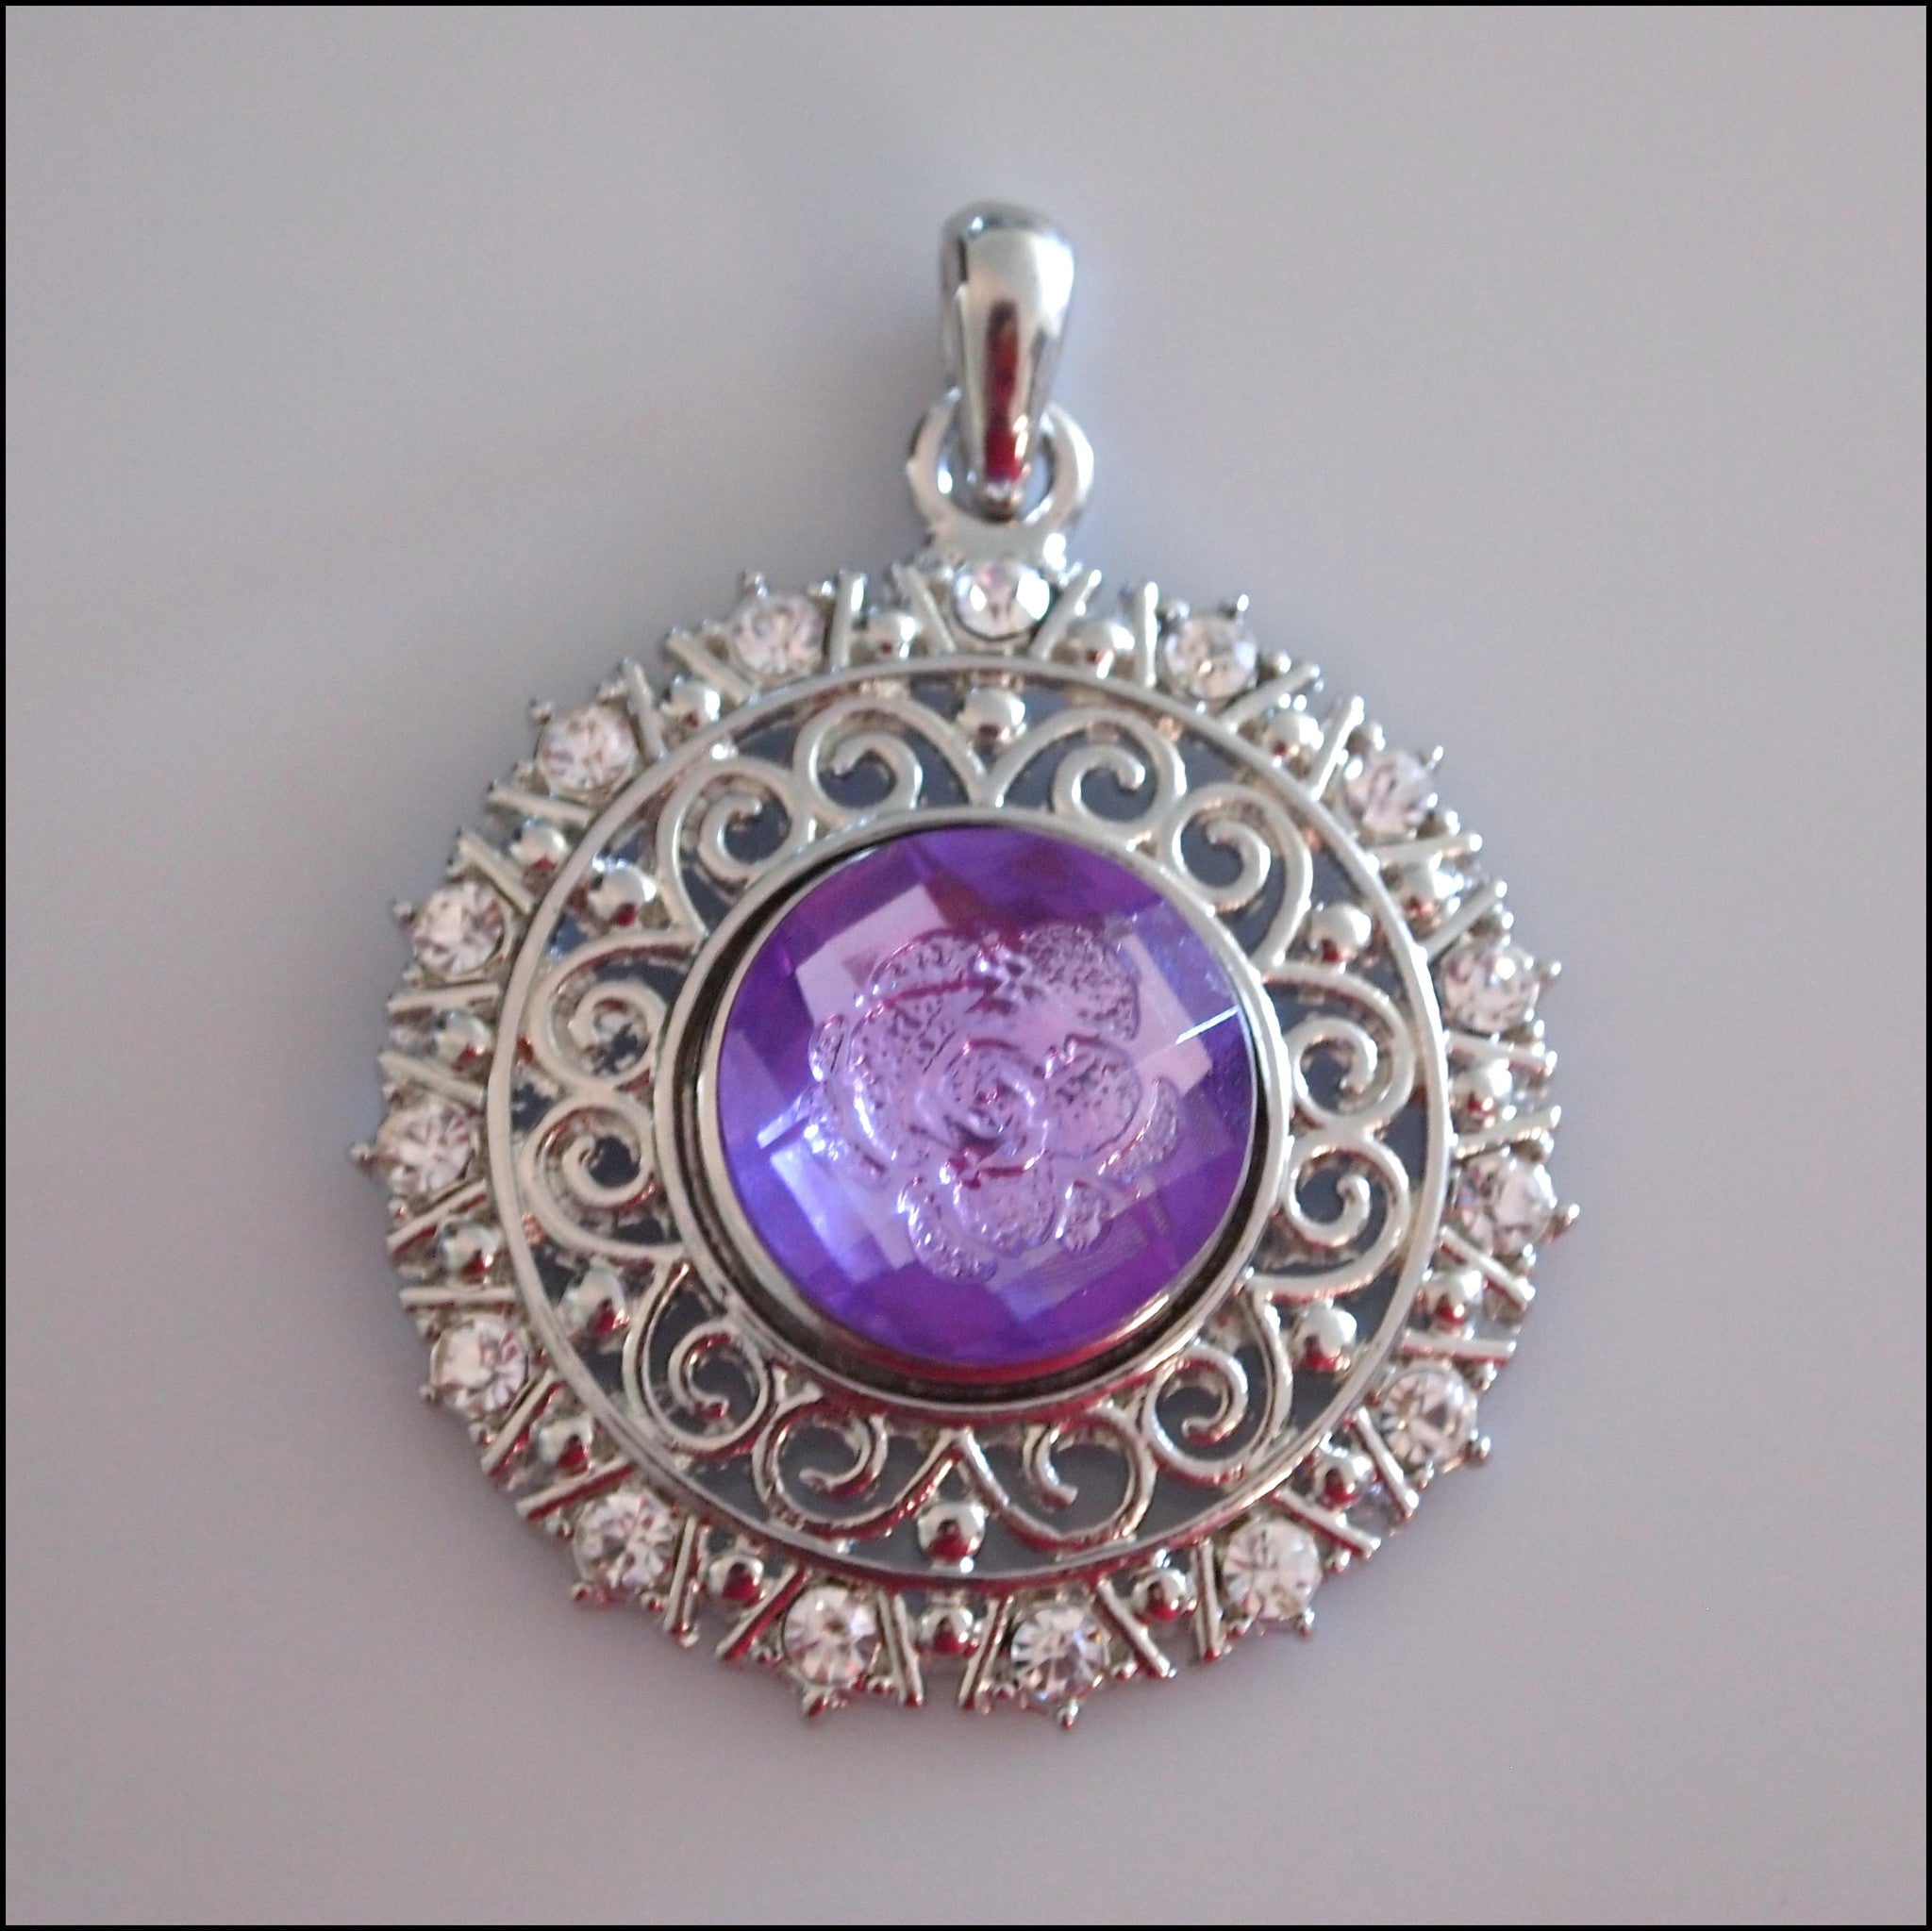 Decorative Round Crystal Snap Pendant with Snap Button - Find Something Special - 1